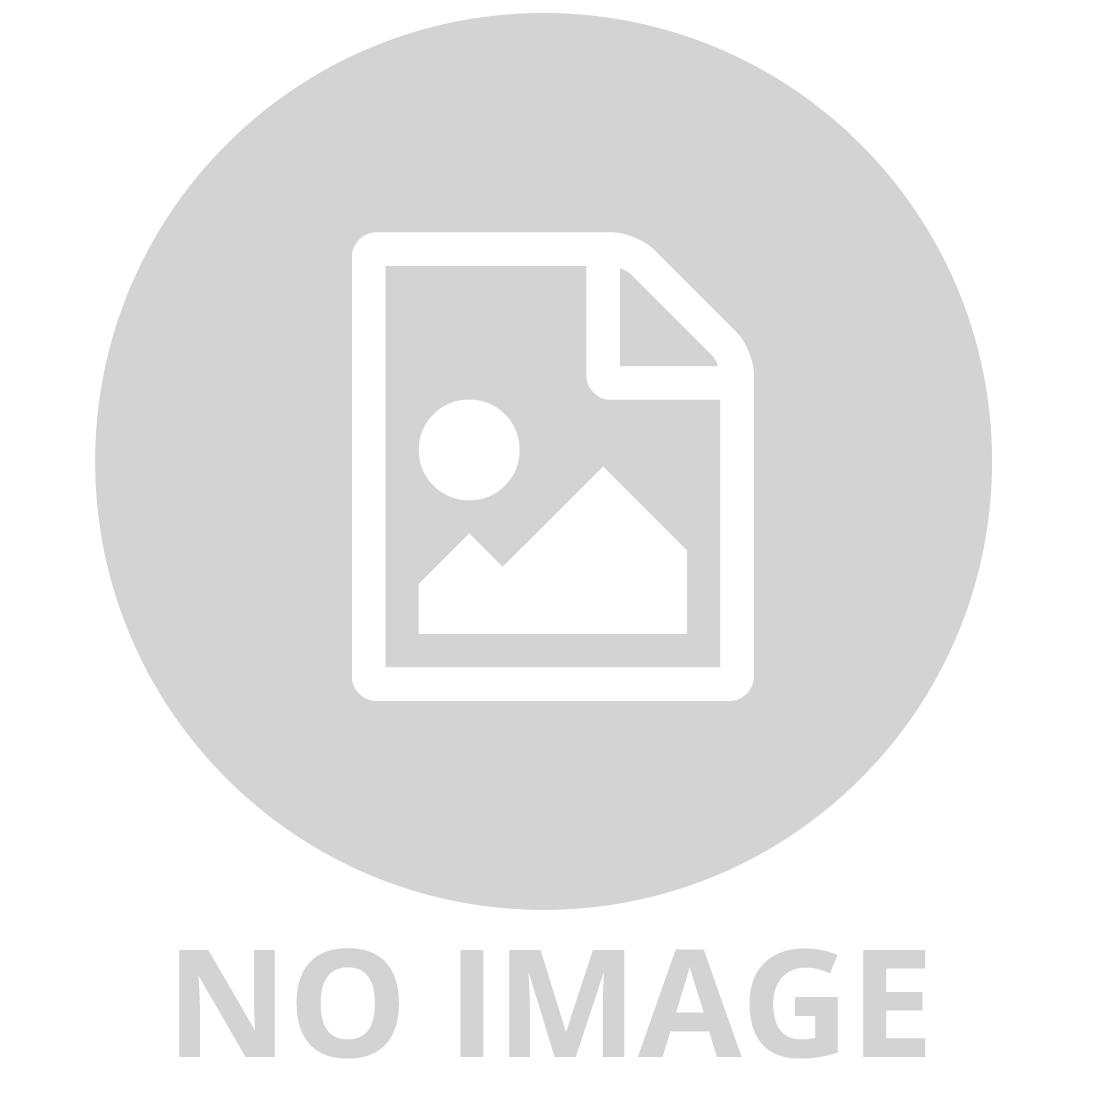 EXT-004 LED Aluminium Extrusion 1